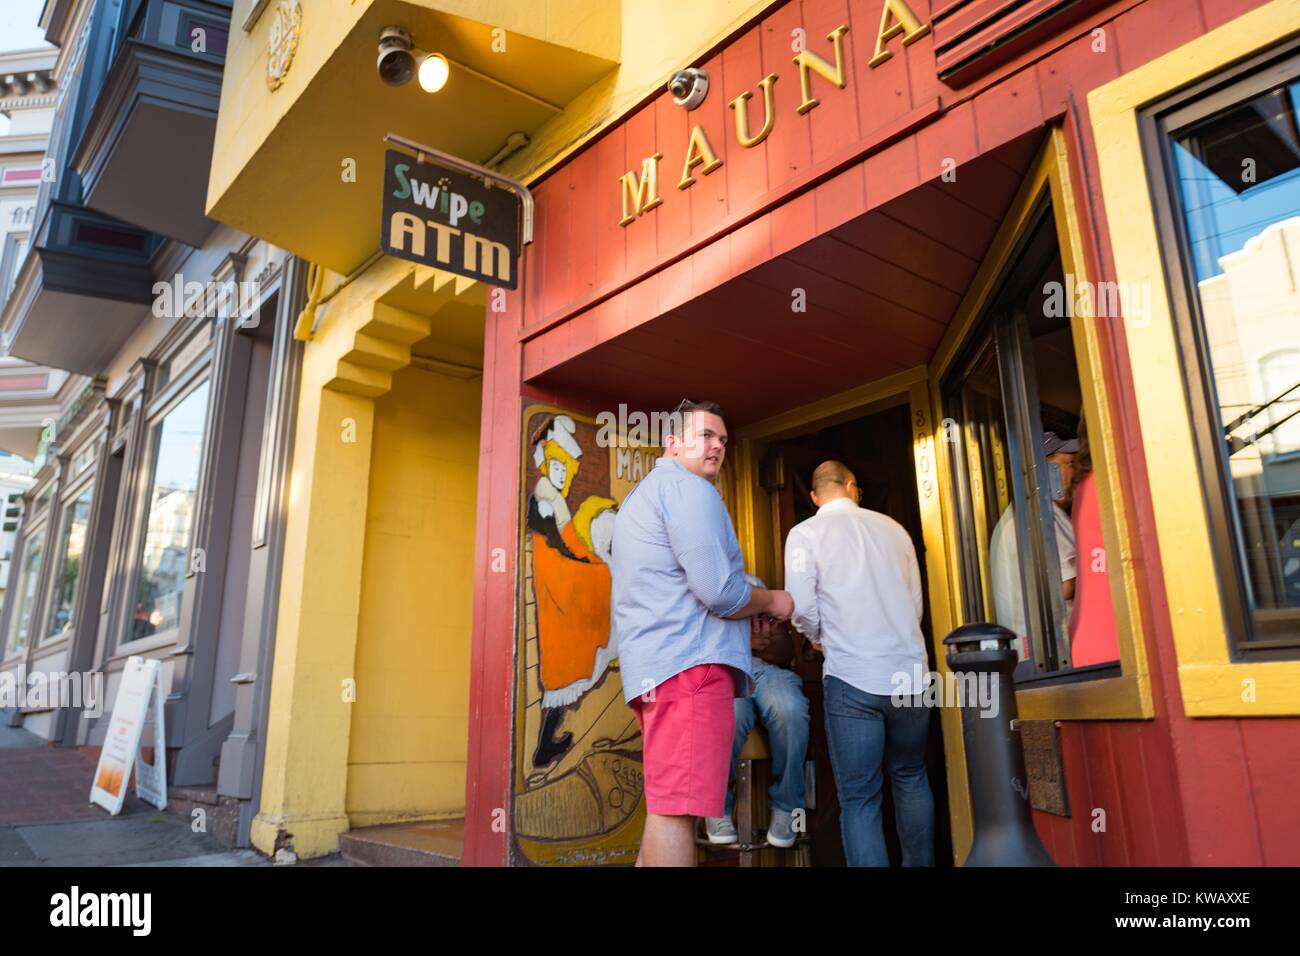 A doorman is checking the IDs of two men entering the Mauna Loa Club in San Francisco, California, October 8, 2016. - Stock Image